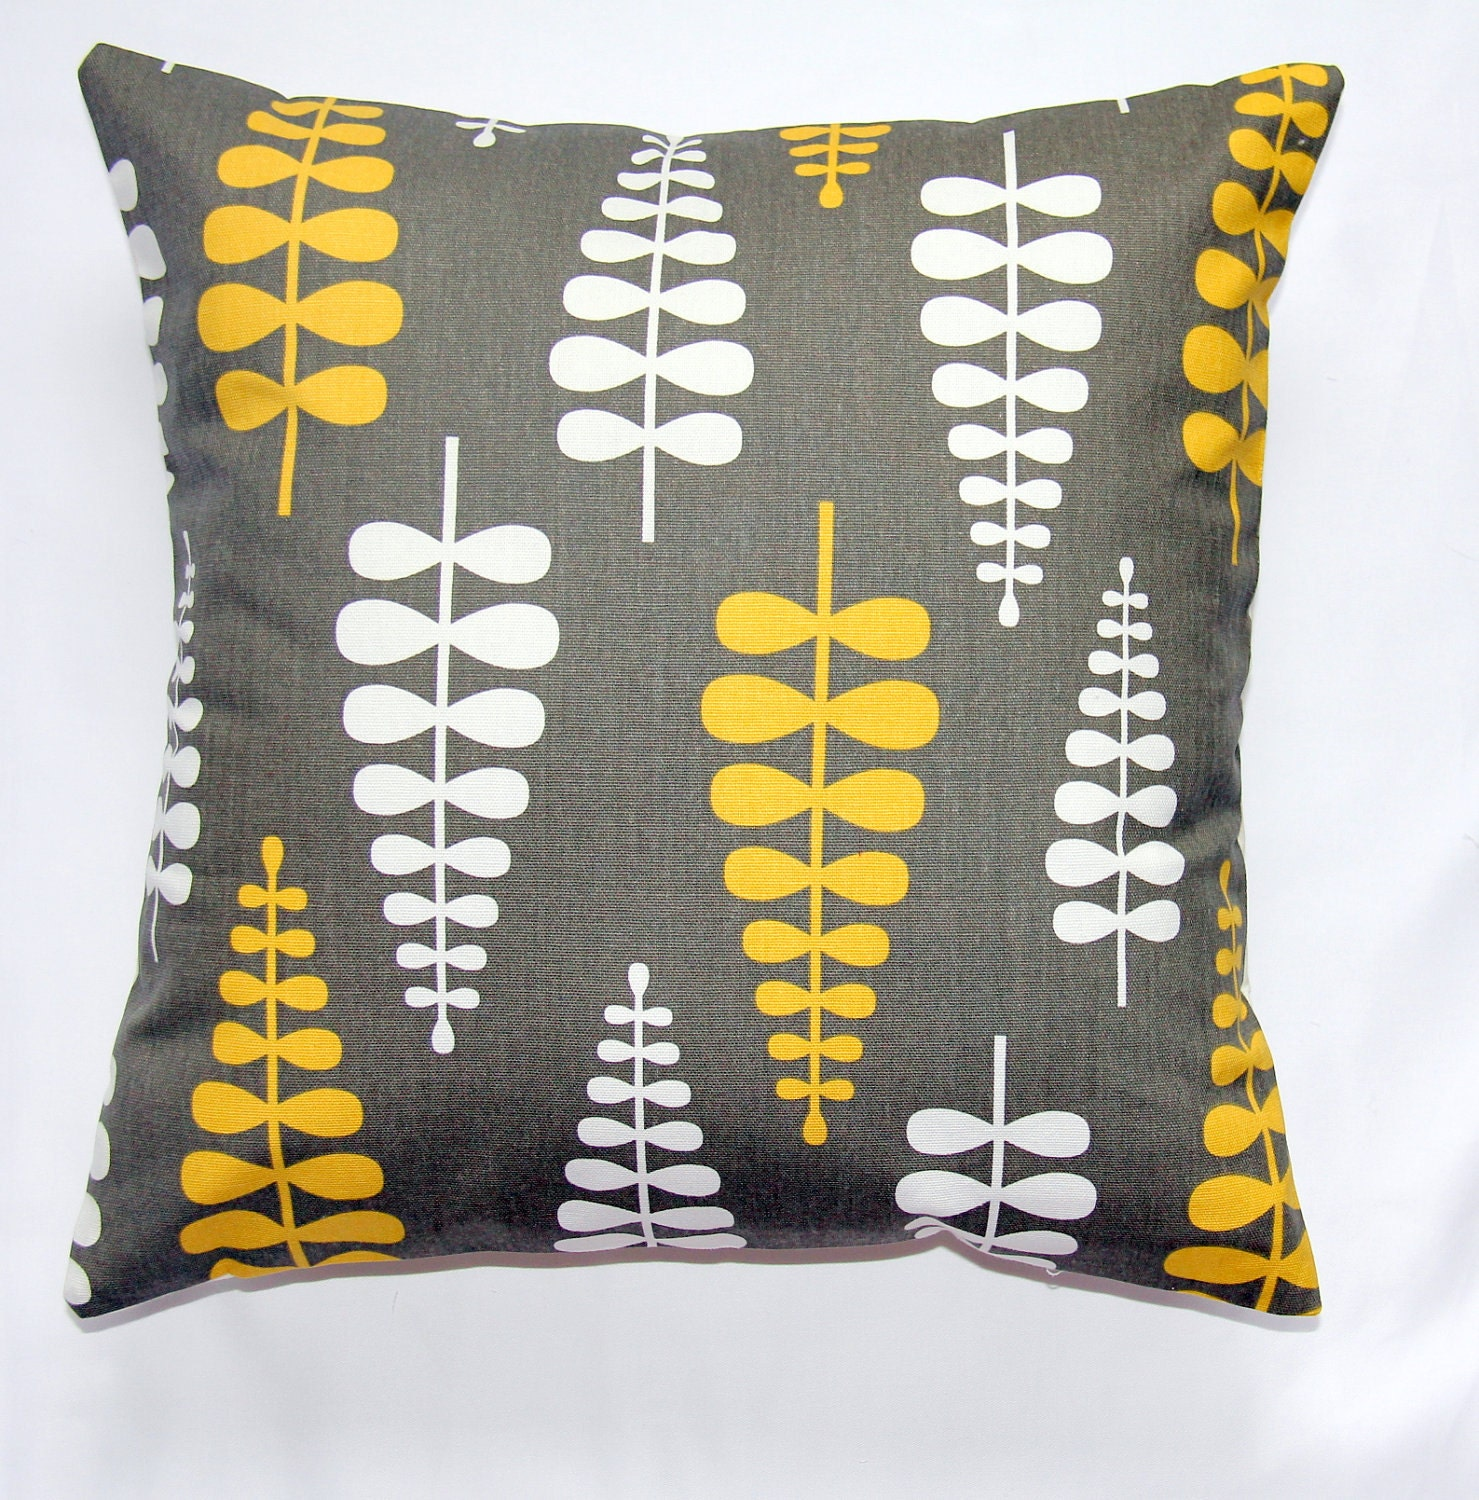 Throw Pillows Black Friday : Black Friday SalePillows throw pillow sofa pillow YELLOW and